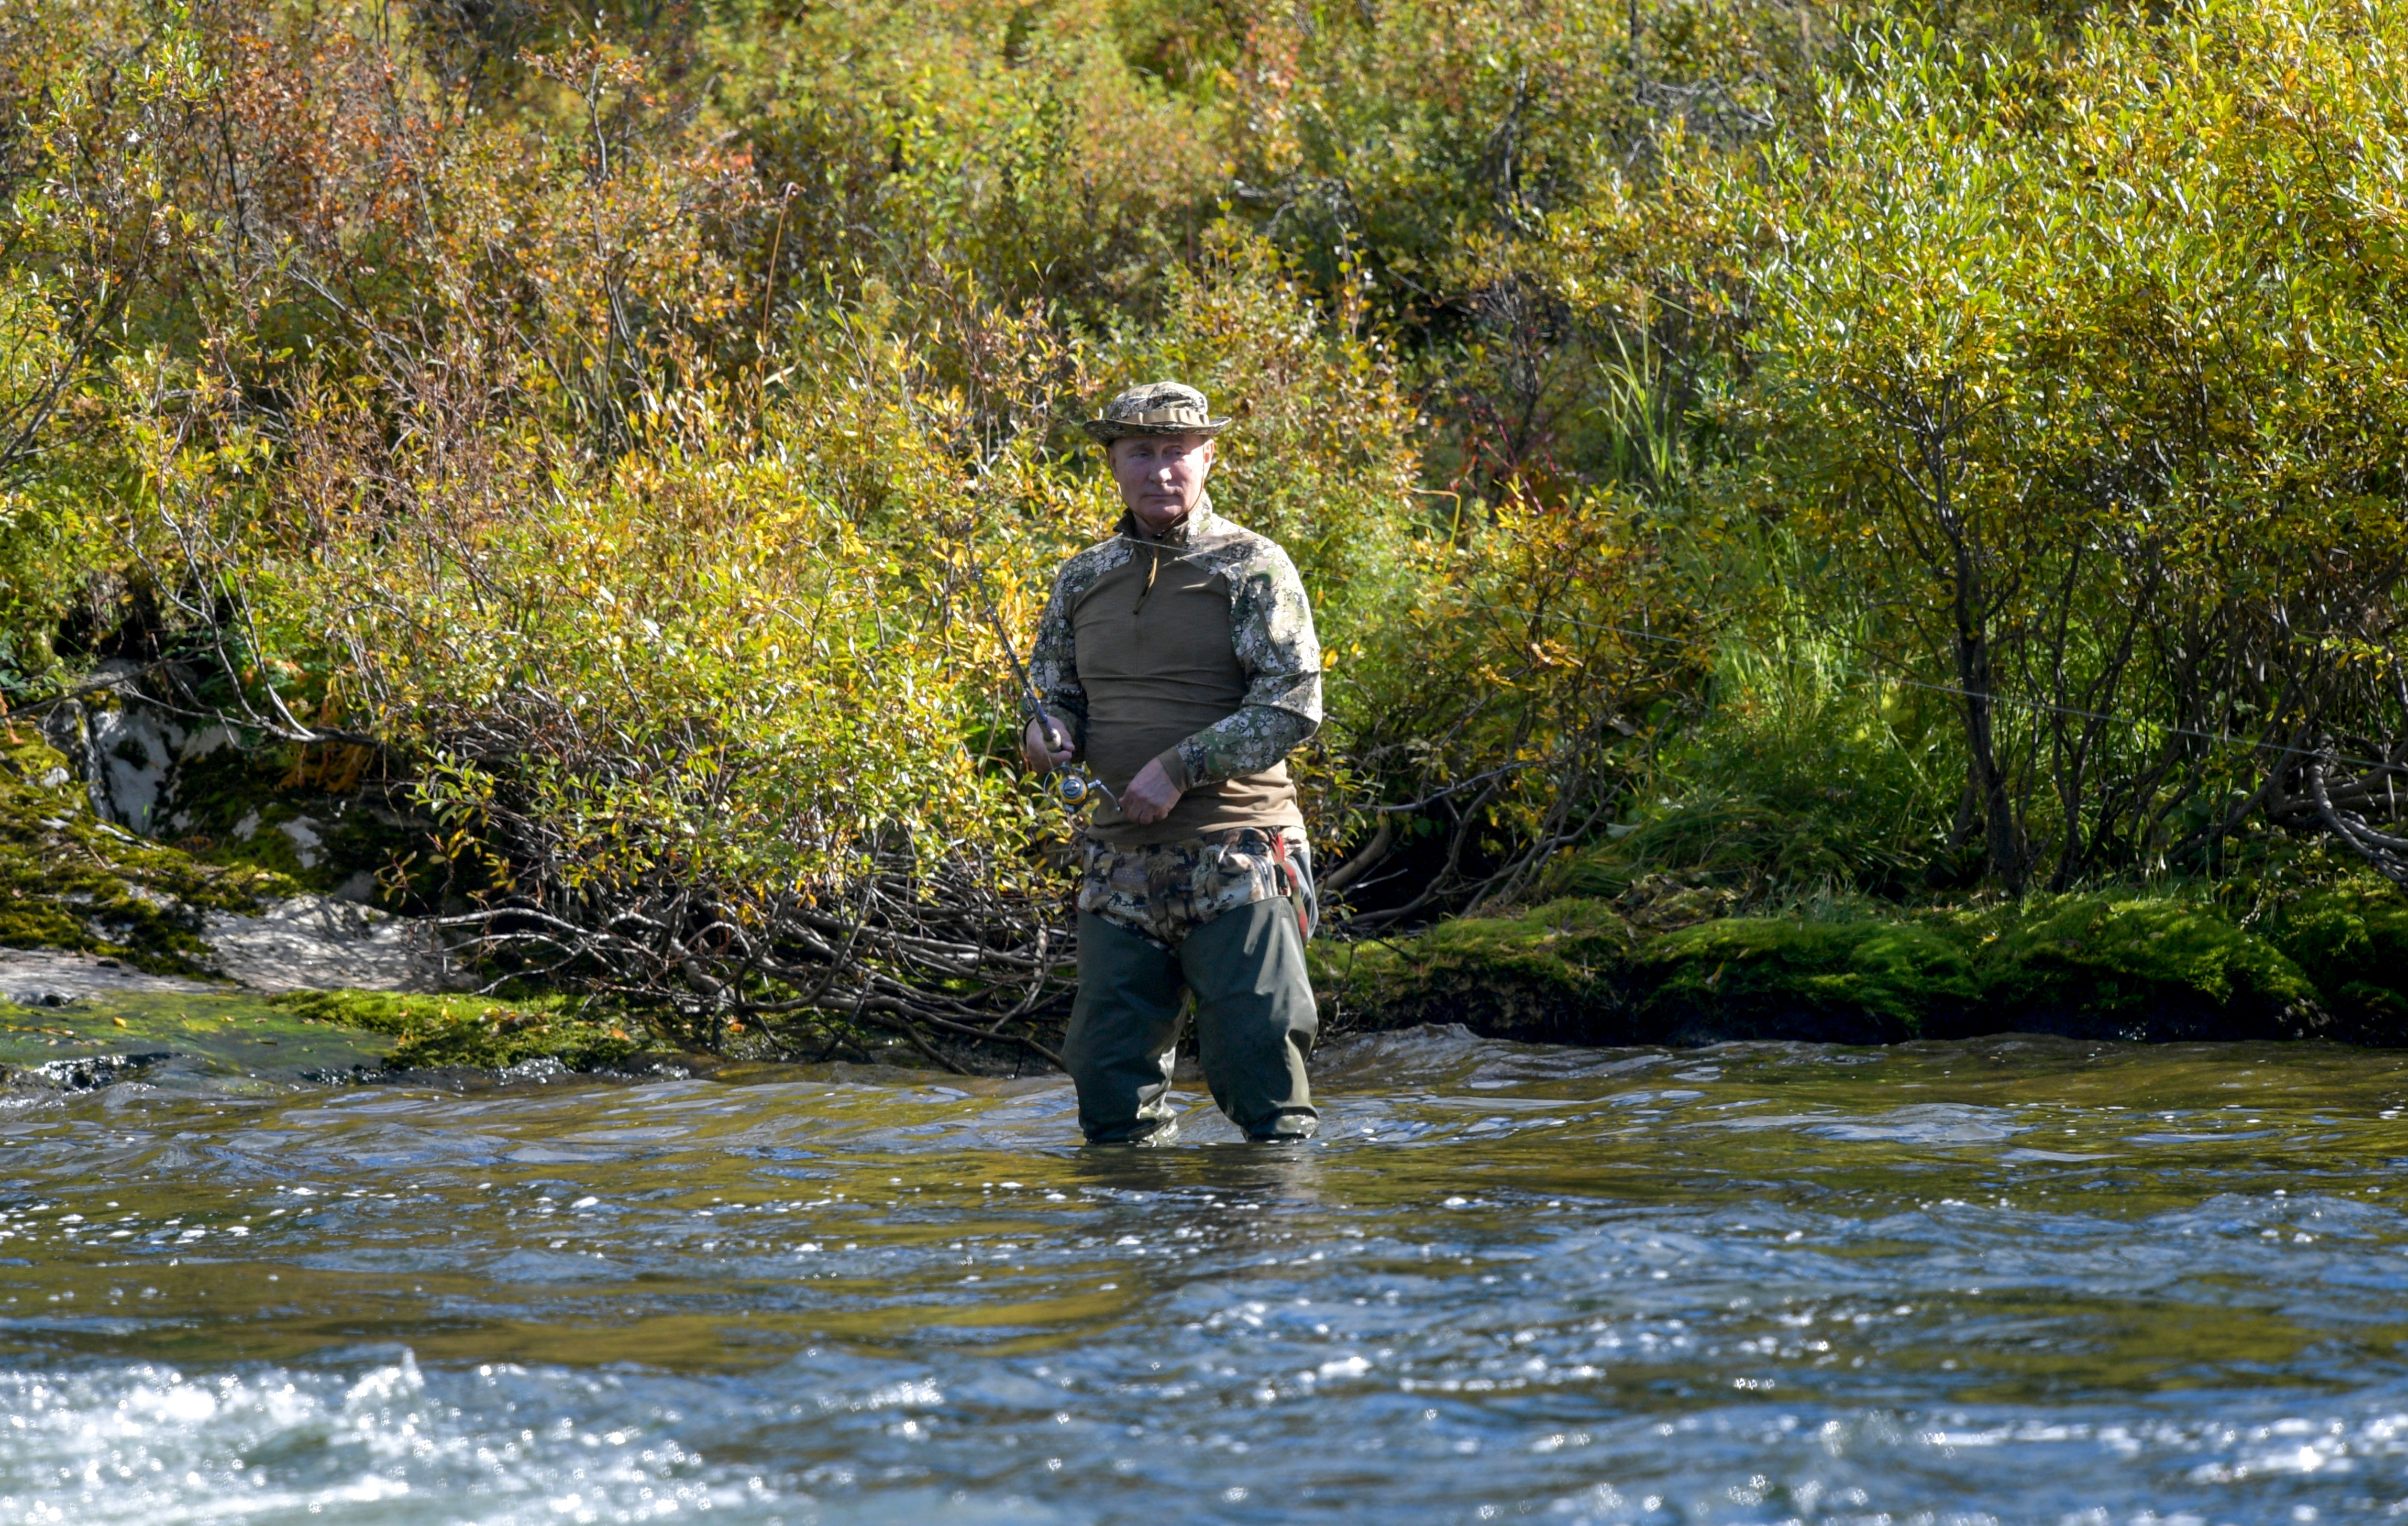 Russian President Vladimir Putin fishes during a short vacation at an unknown location in Siberia, Russia, in this undated photo taken in September 2021 and released September 26, 2021. Sputnik/Alexei Druzhinin/Kremlin via REUTERS